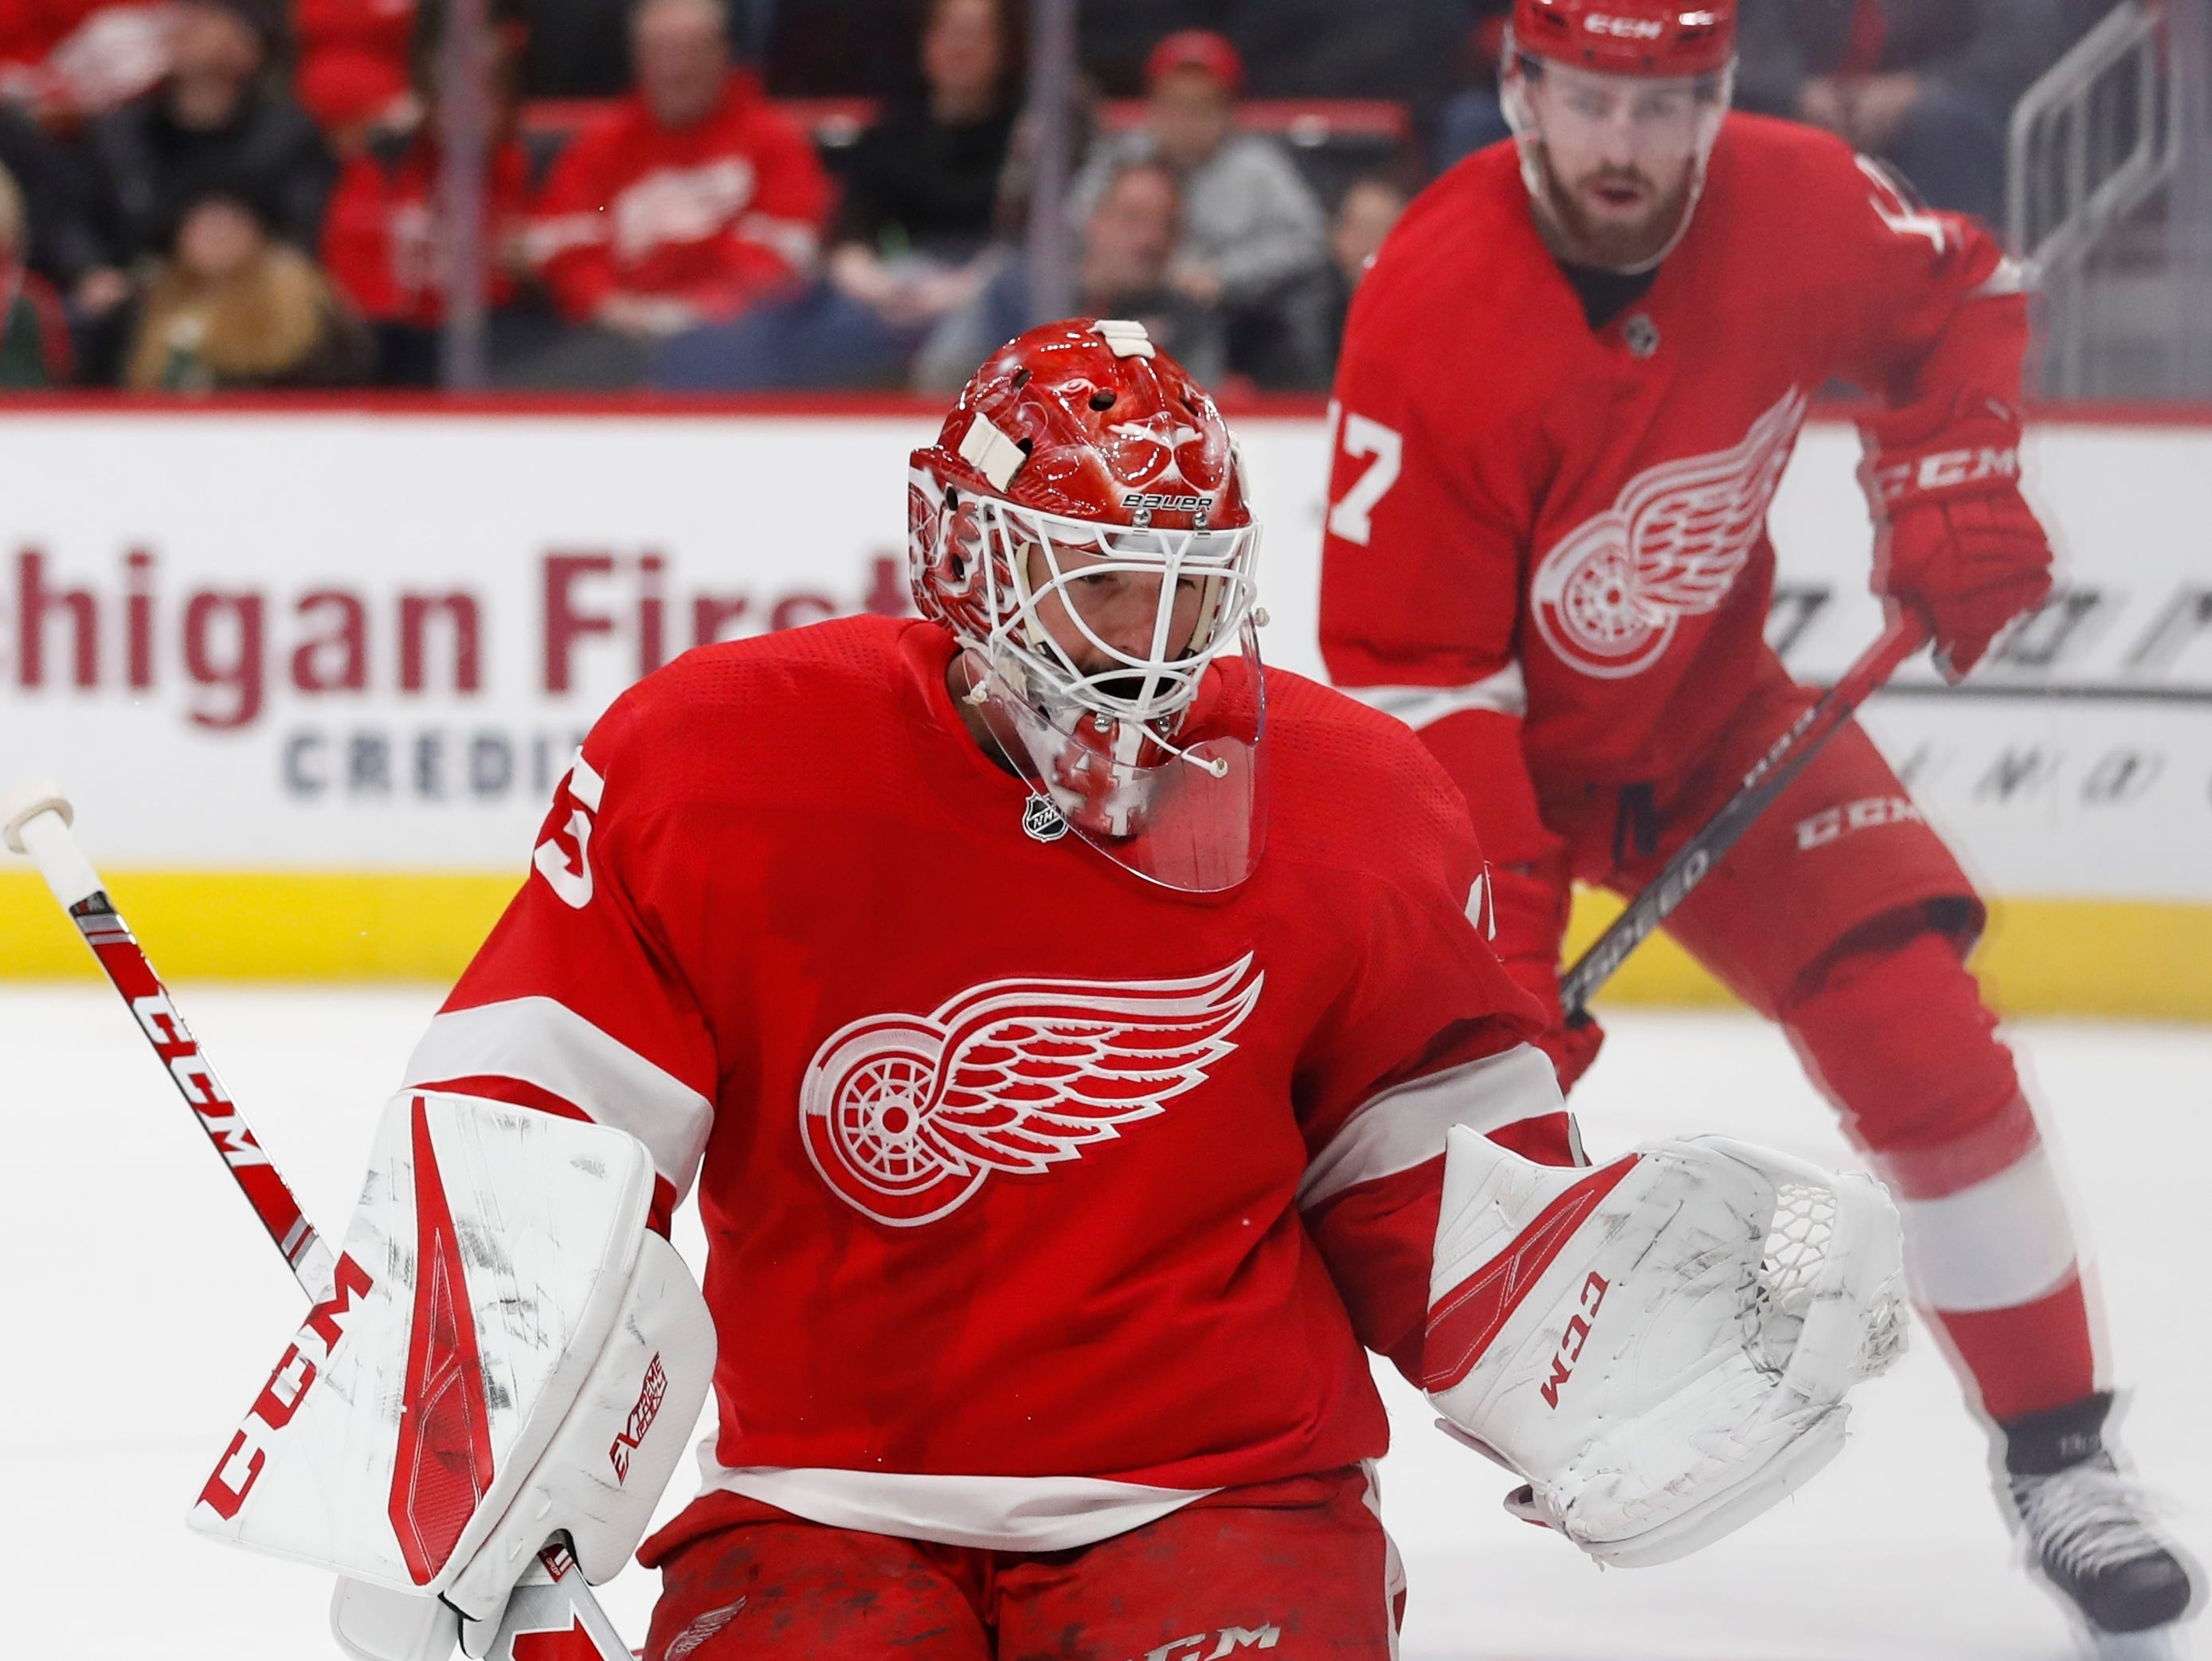 Detroit Red Wings goaltender Jonathan Bernier deflects a shot during the second period of an NHL hockey game against the Minnesota Wild, Friday, Feb. 22, 2019, in Detroit.